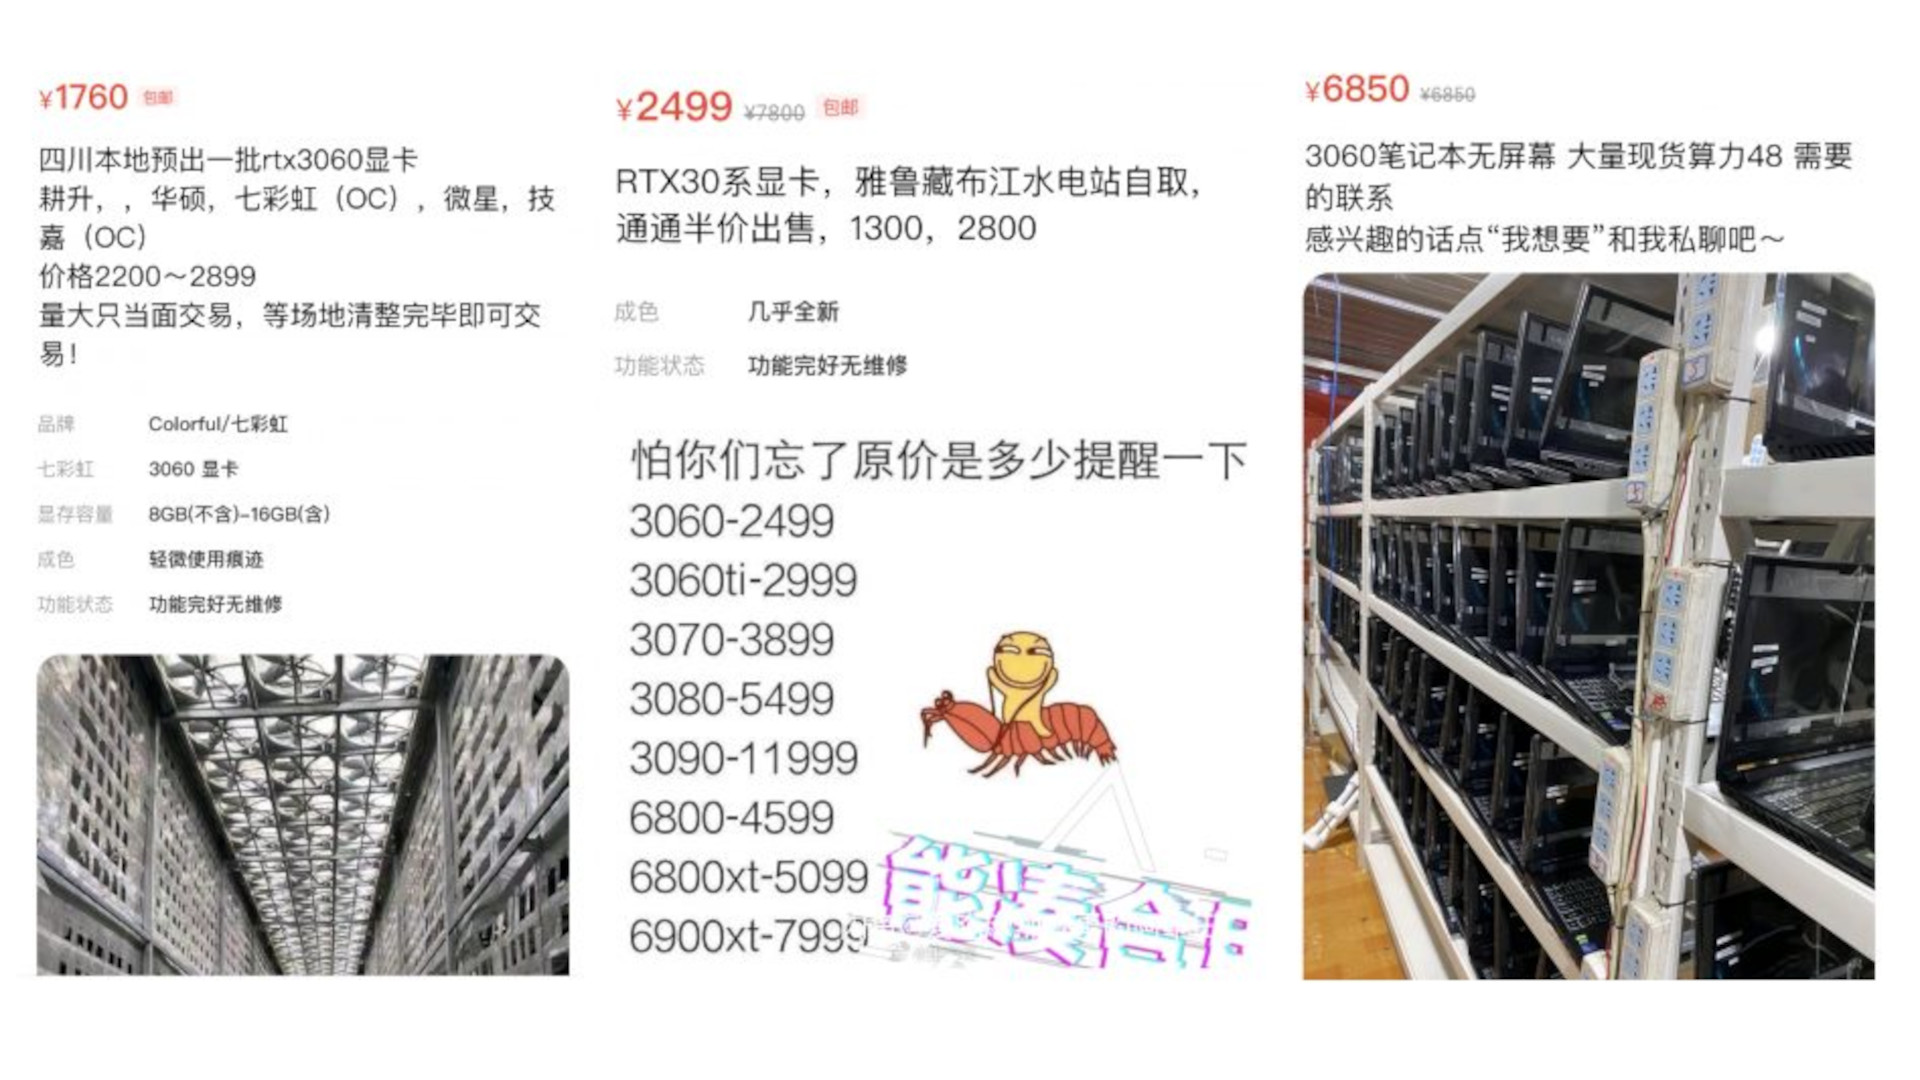 Used GPUs for sale in China